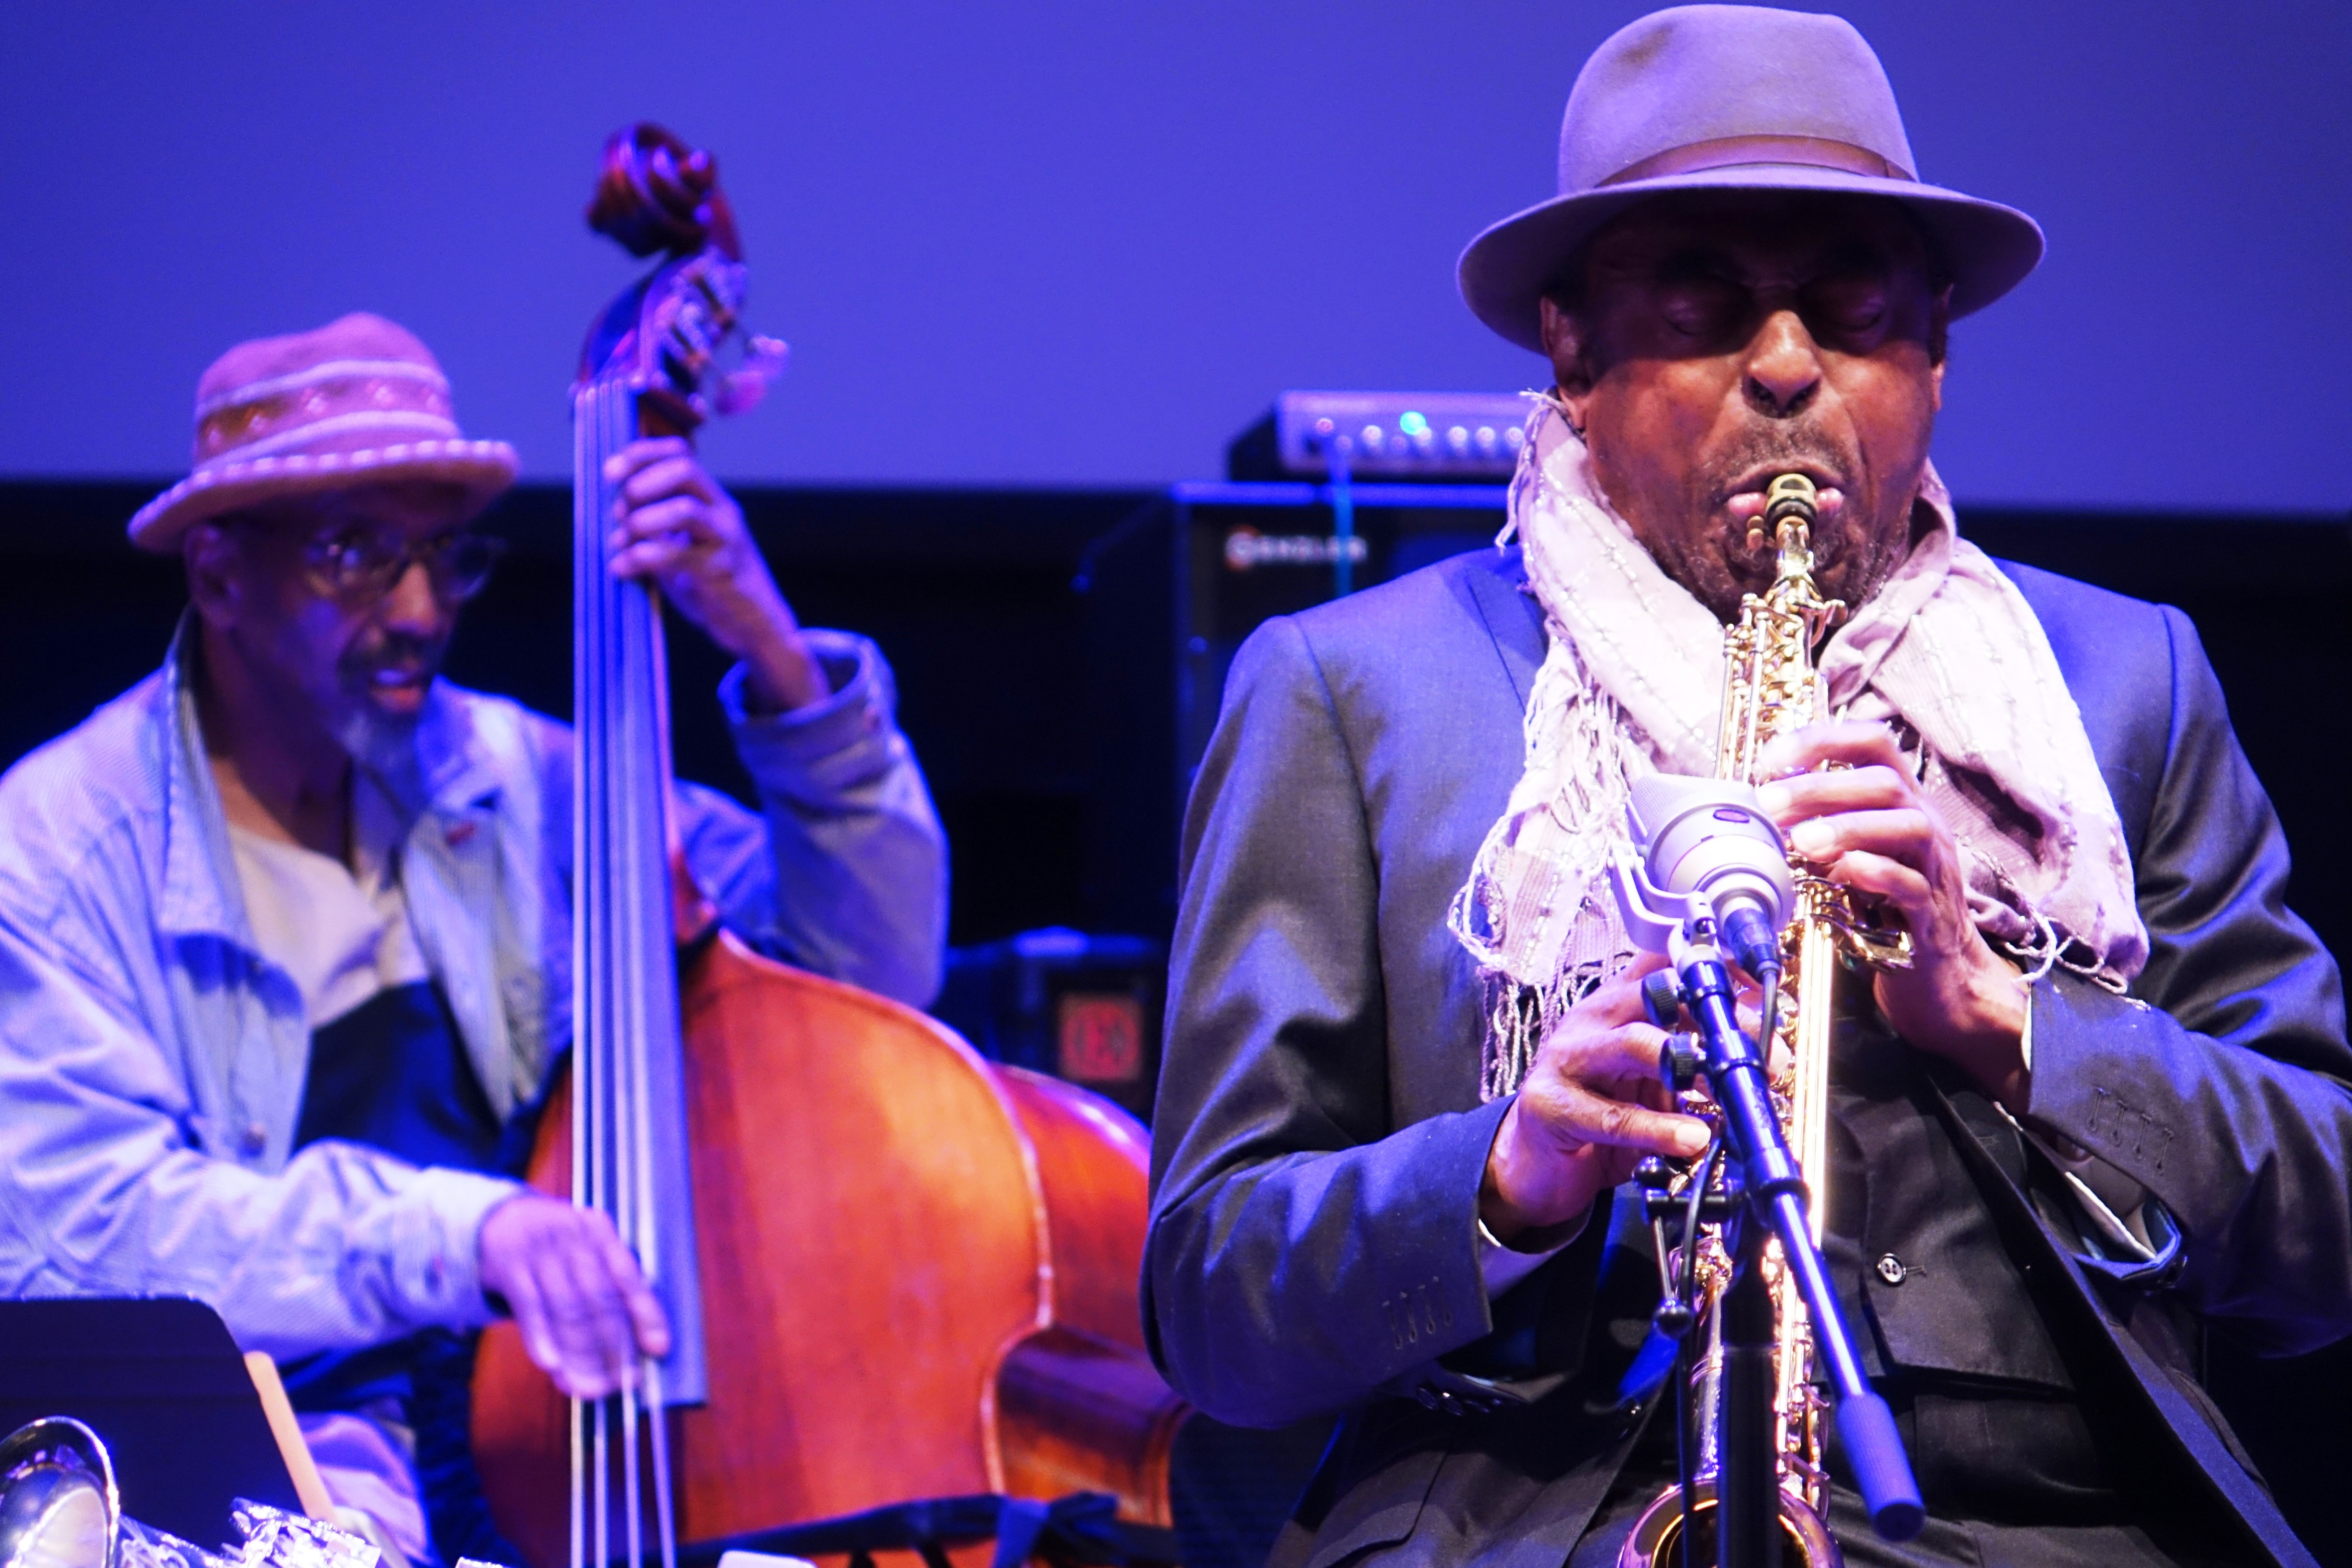 William Parker and Archie Shepp at Roulette, Brooklyn in May 2018